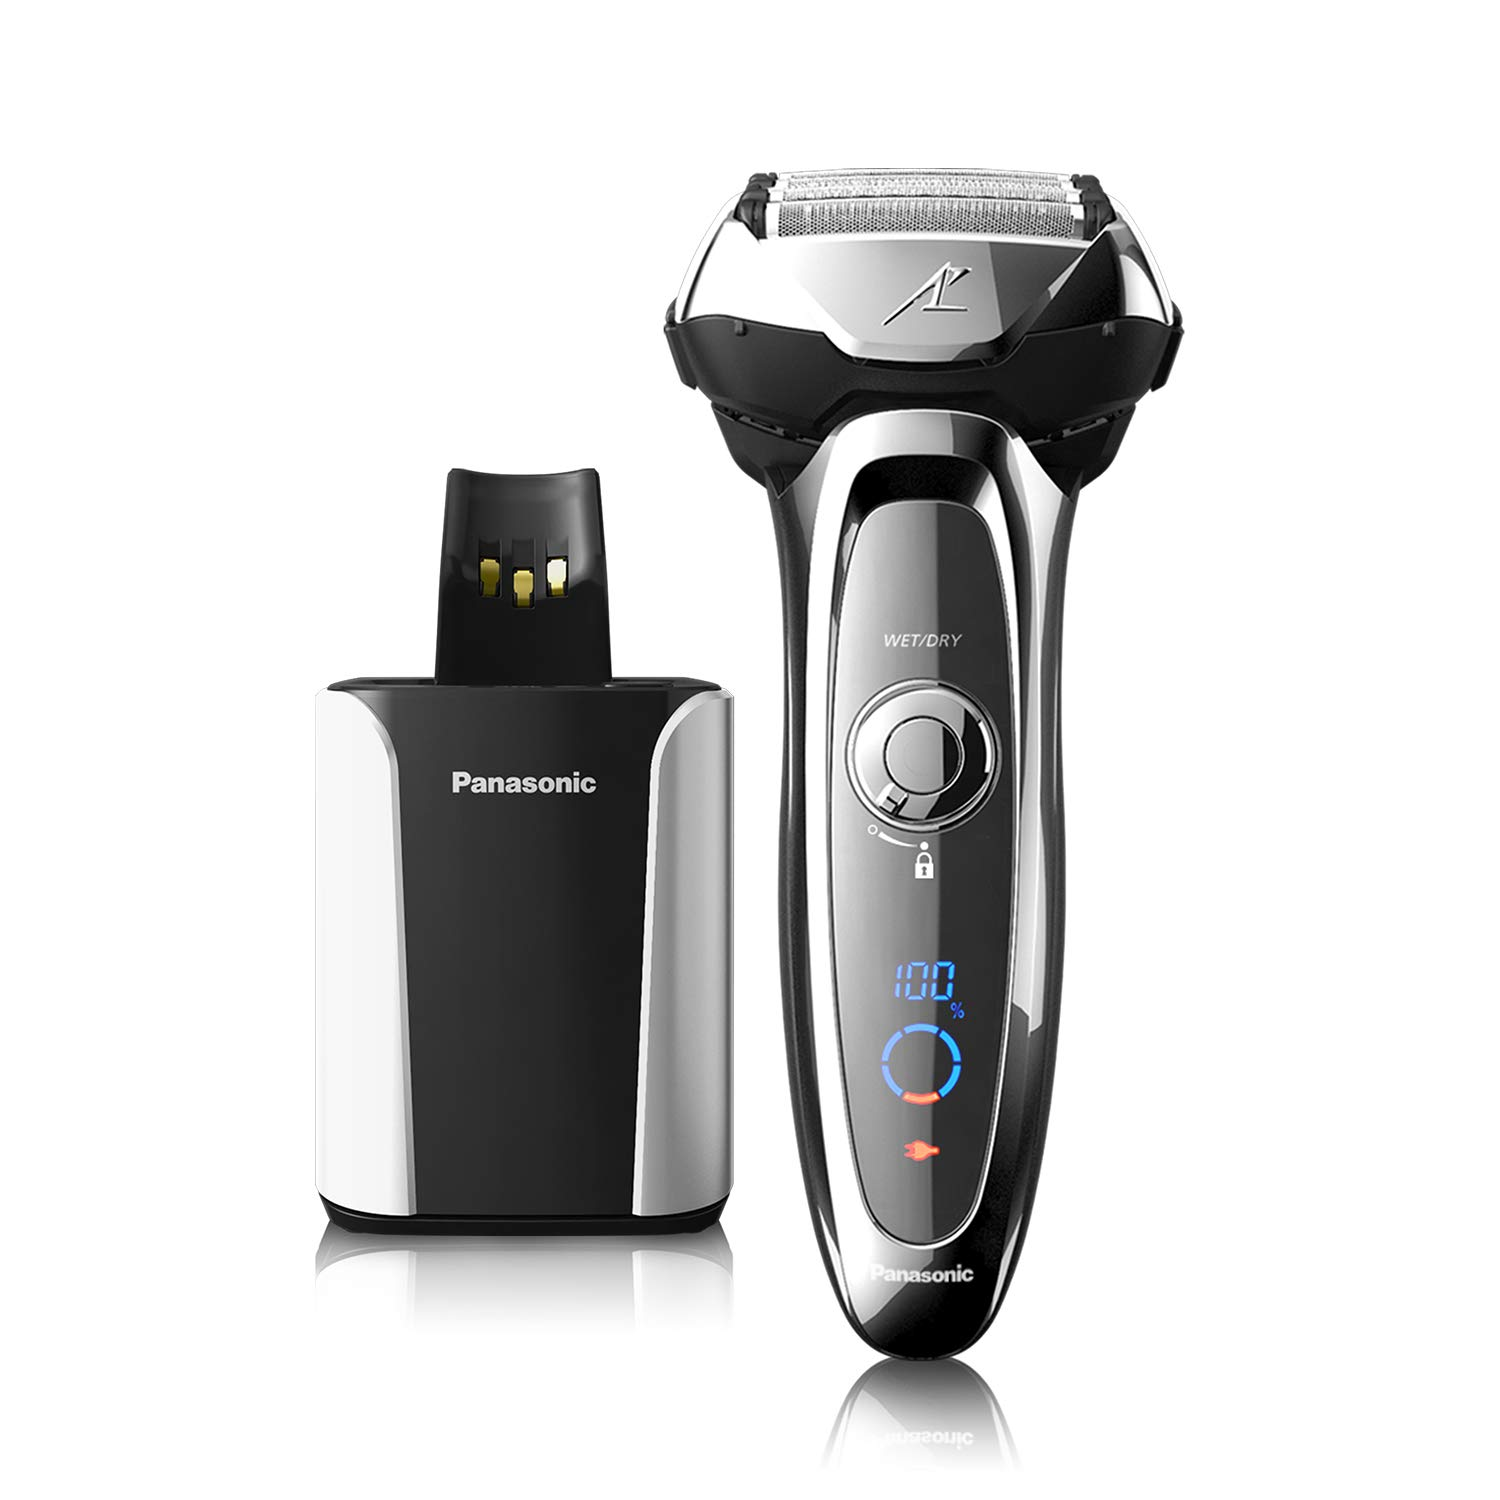 Panasonic ES-LV95-S Arc5 Wet/Dry Shaver with Cleaning and Charging System(Versin EE.UU., importado): Amazon.es: Informática